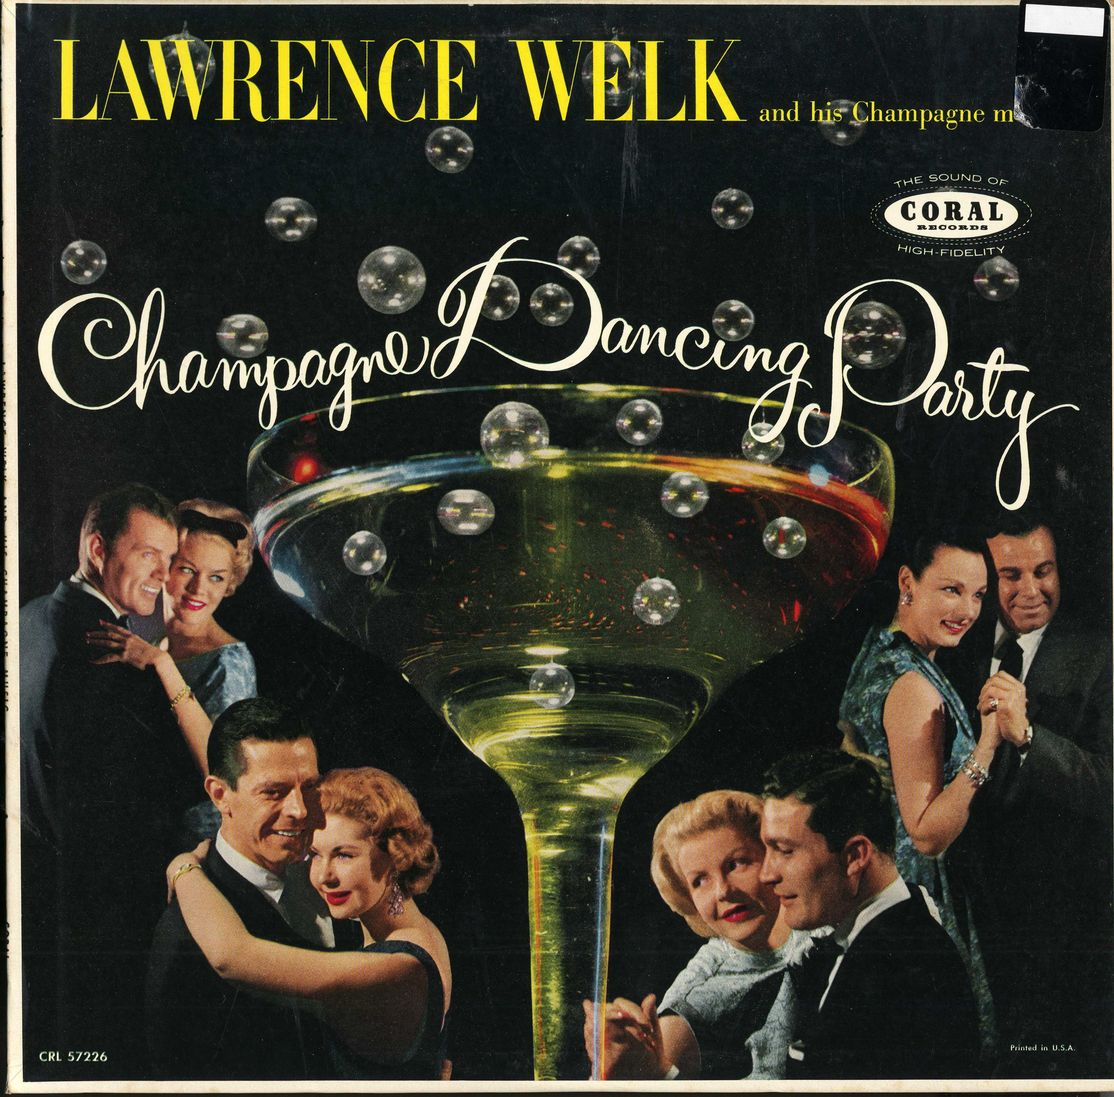 crl57226-lawrence-welk-champagne-dancing-party.jpg